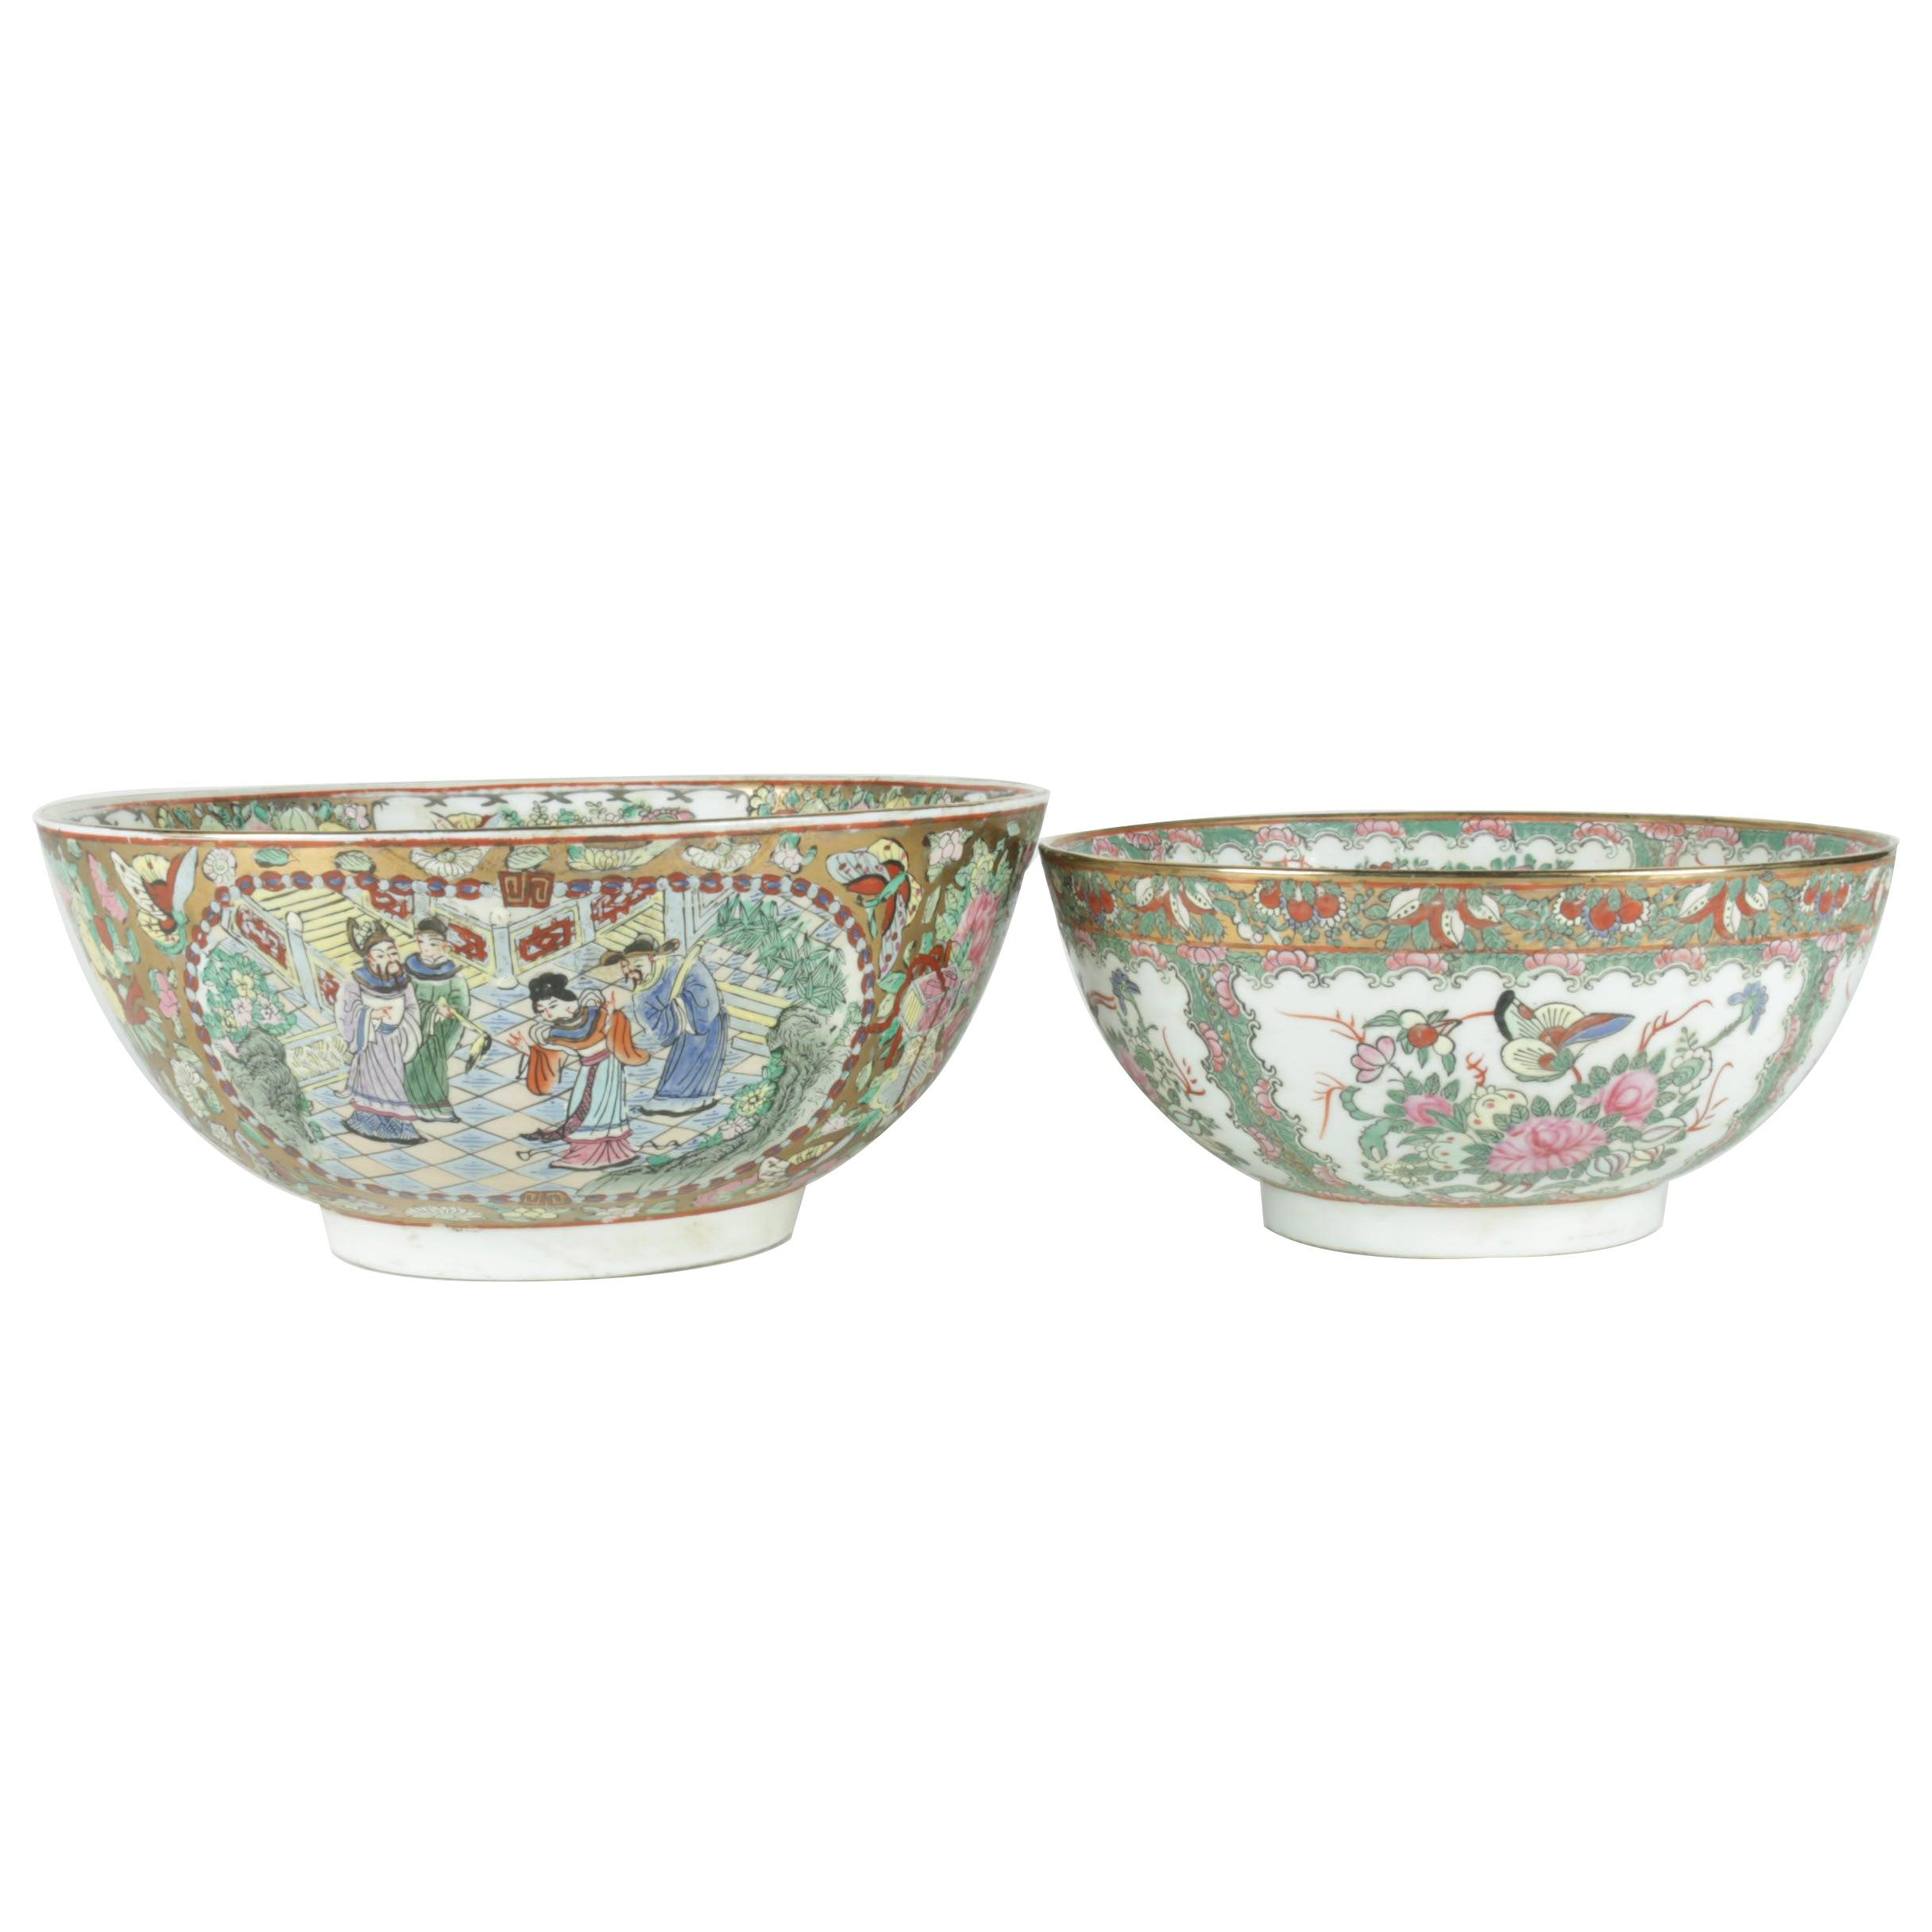 Pair of Chinese Export Famille Rose Style Bowls